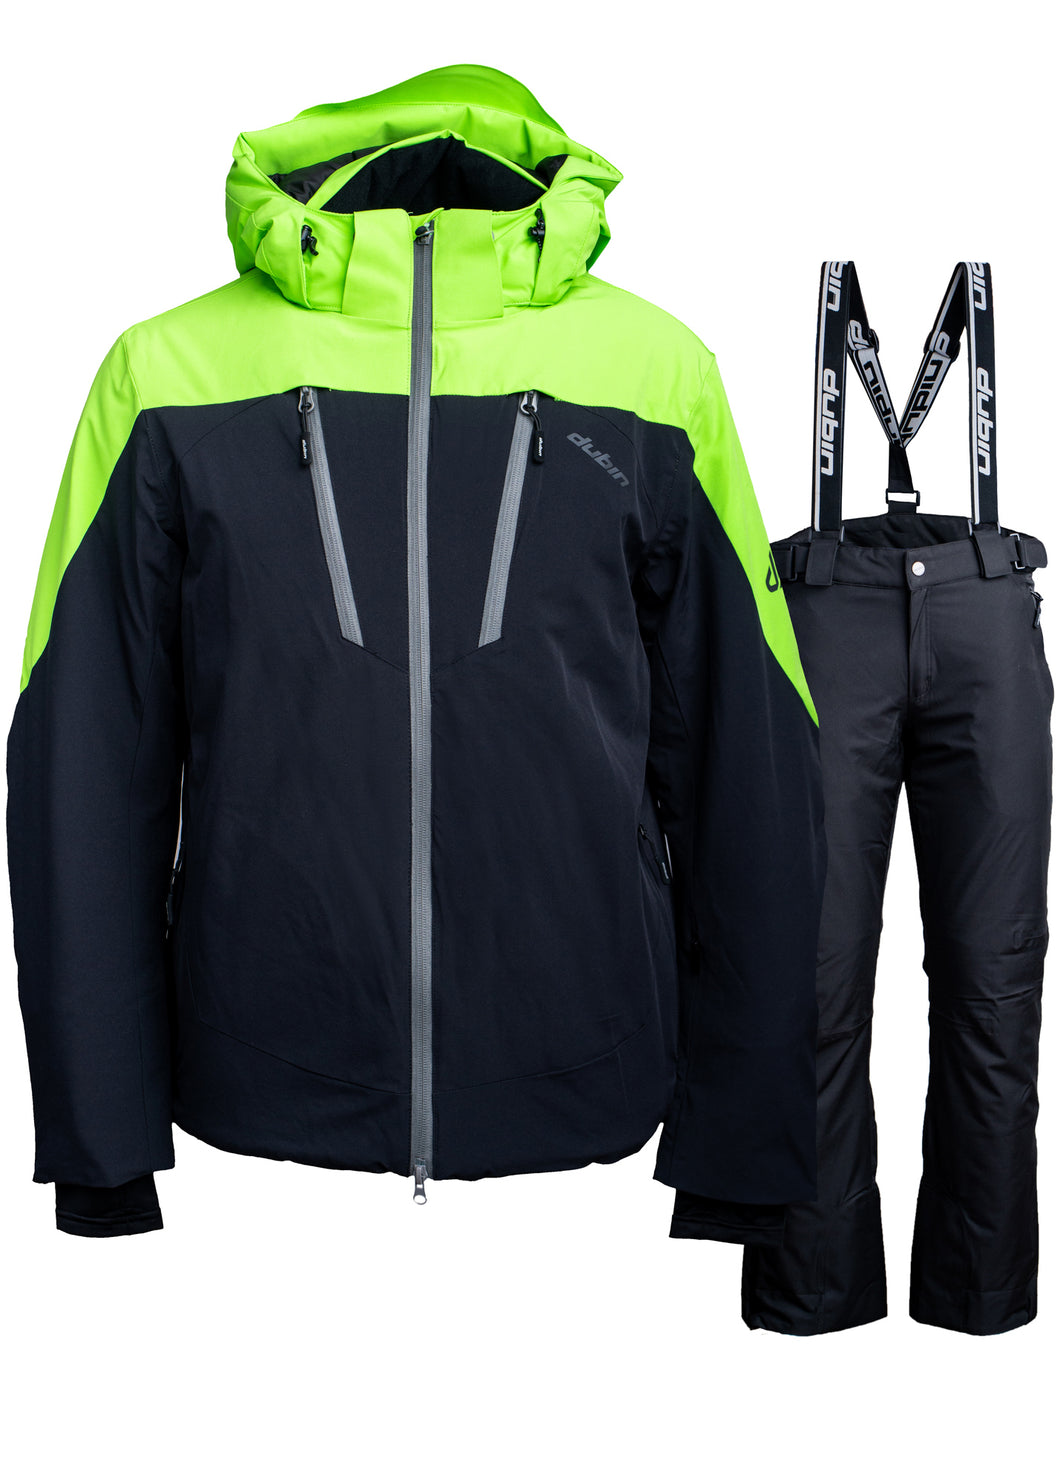 SET SCI SKIWELT 15K - BLACK/LIME